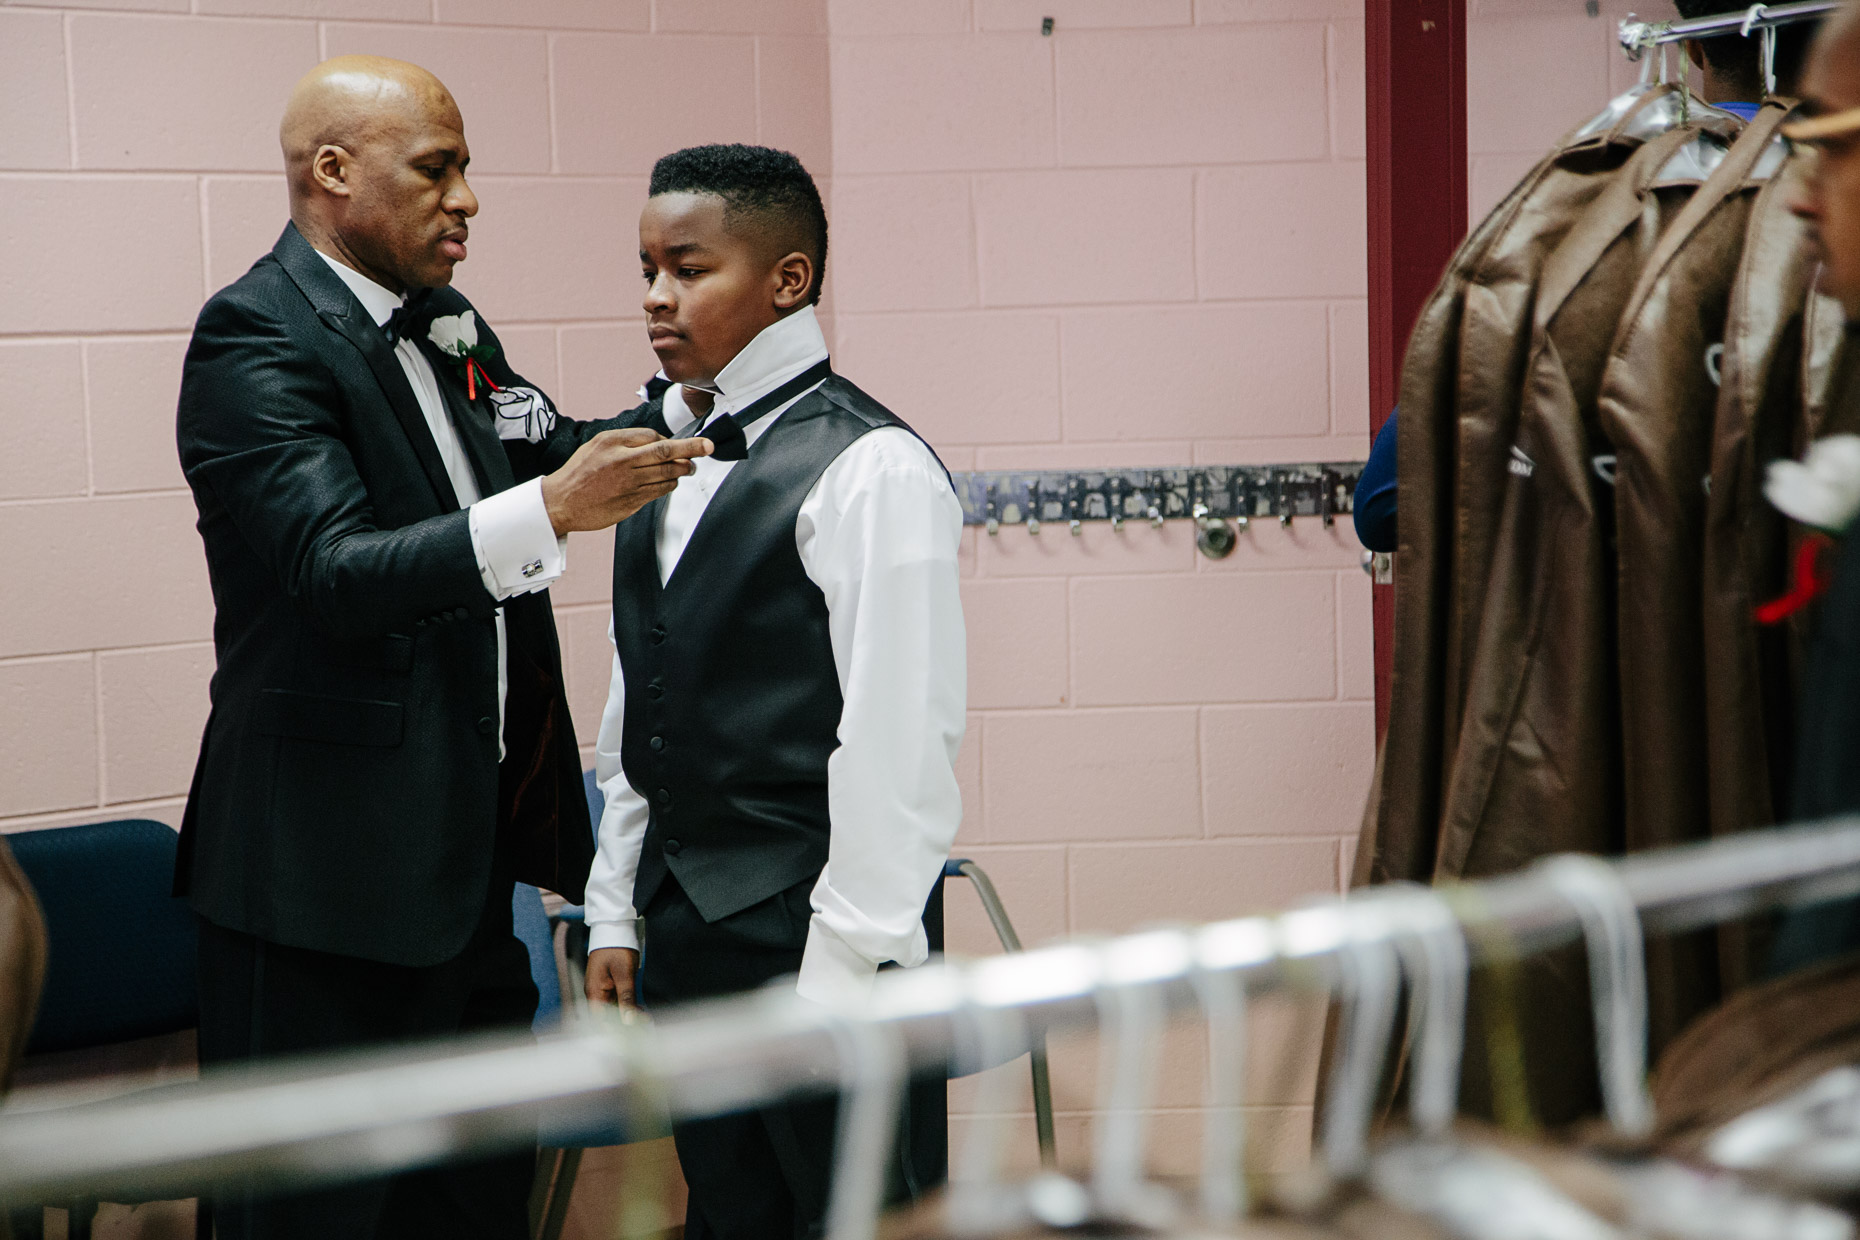 A young man gets help putting on his bowtie for the 500 Black Tuxedos Event, organized by Andre Lee Ellis, on Saturday December 12th, 2015 in Milwaukee, Wisconsin.